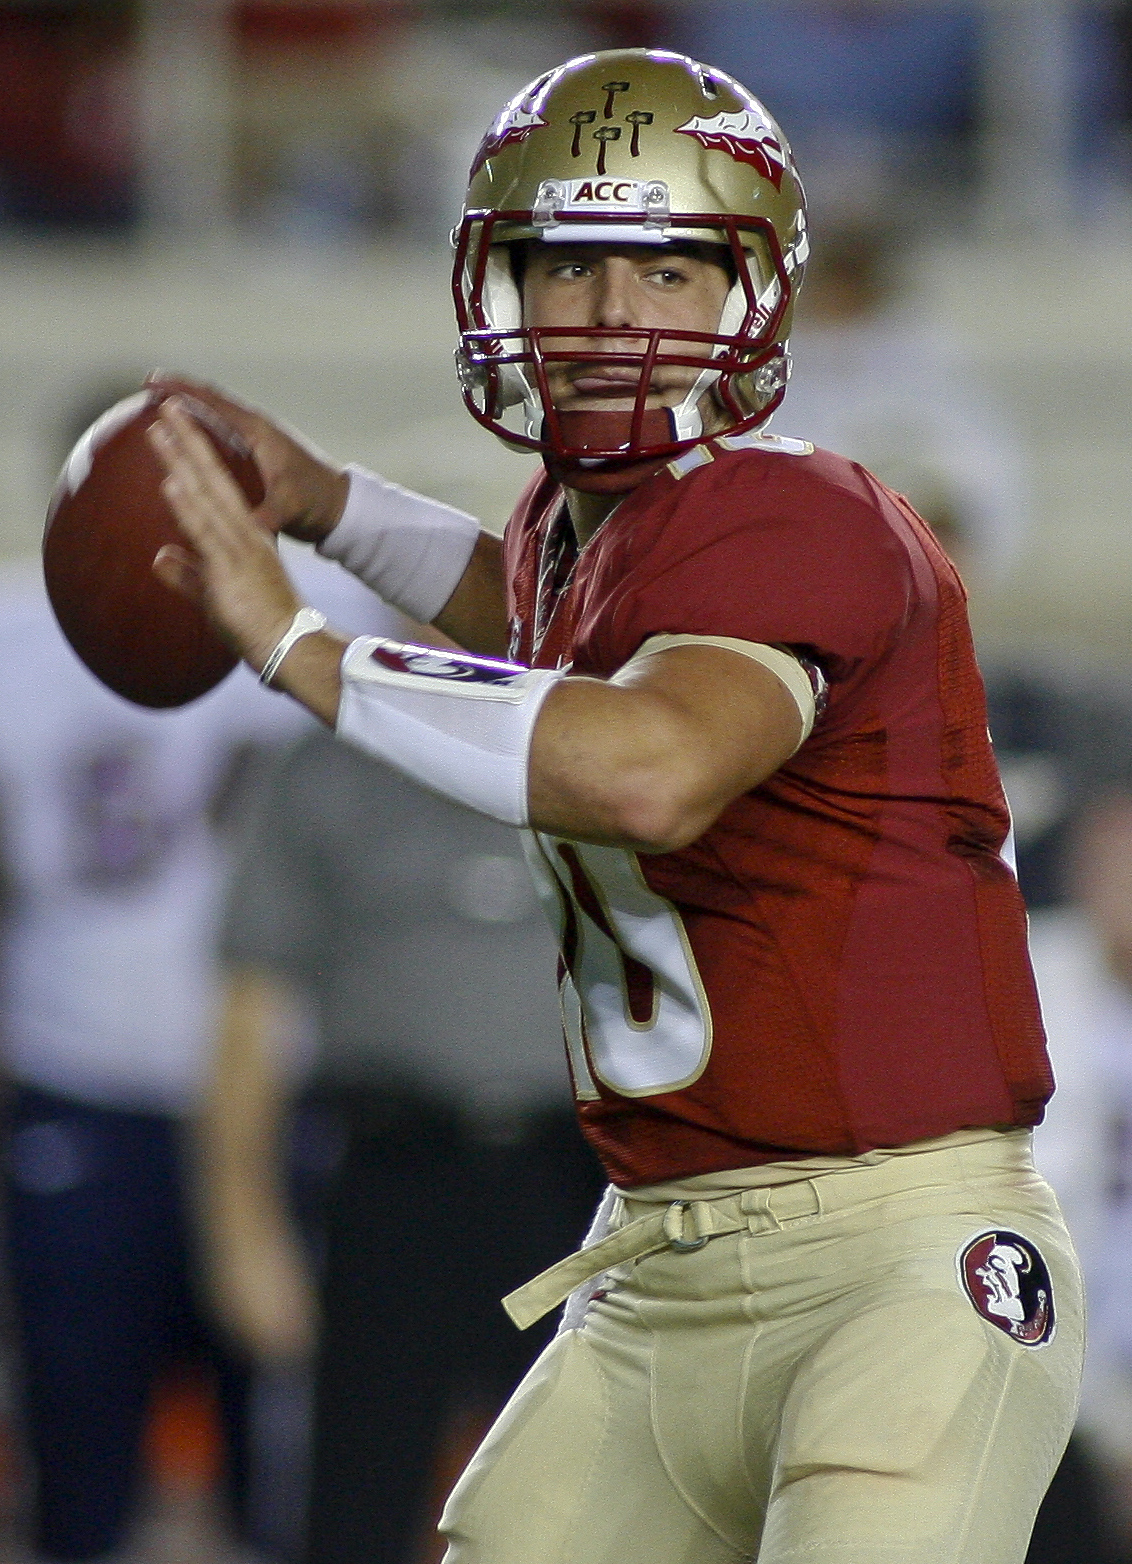 FILE - In this Nov. 16, 2013, file photo, Florida State quarterback Sean Maguire throws a pass during the fourth quarter of an NCAA college football game against Syracuse in Tallahassee, Fla. With 17 starters returning, the spotlight was already on Florid